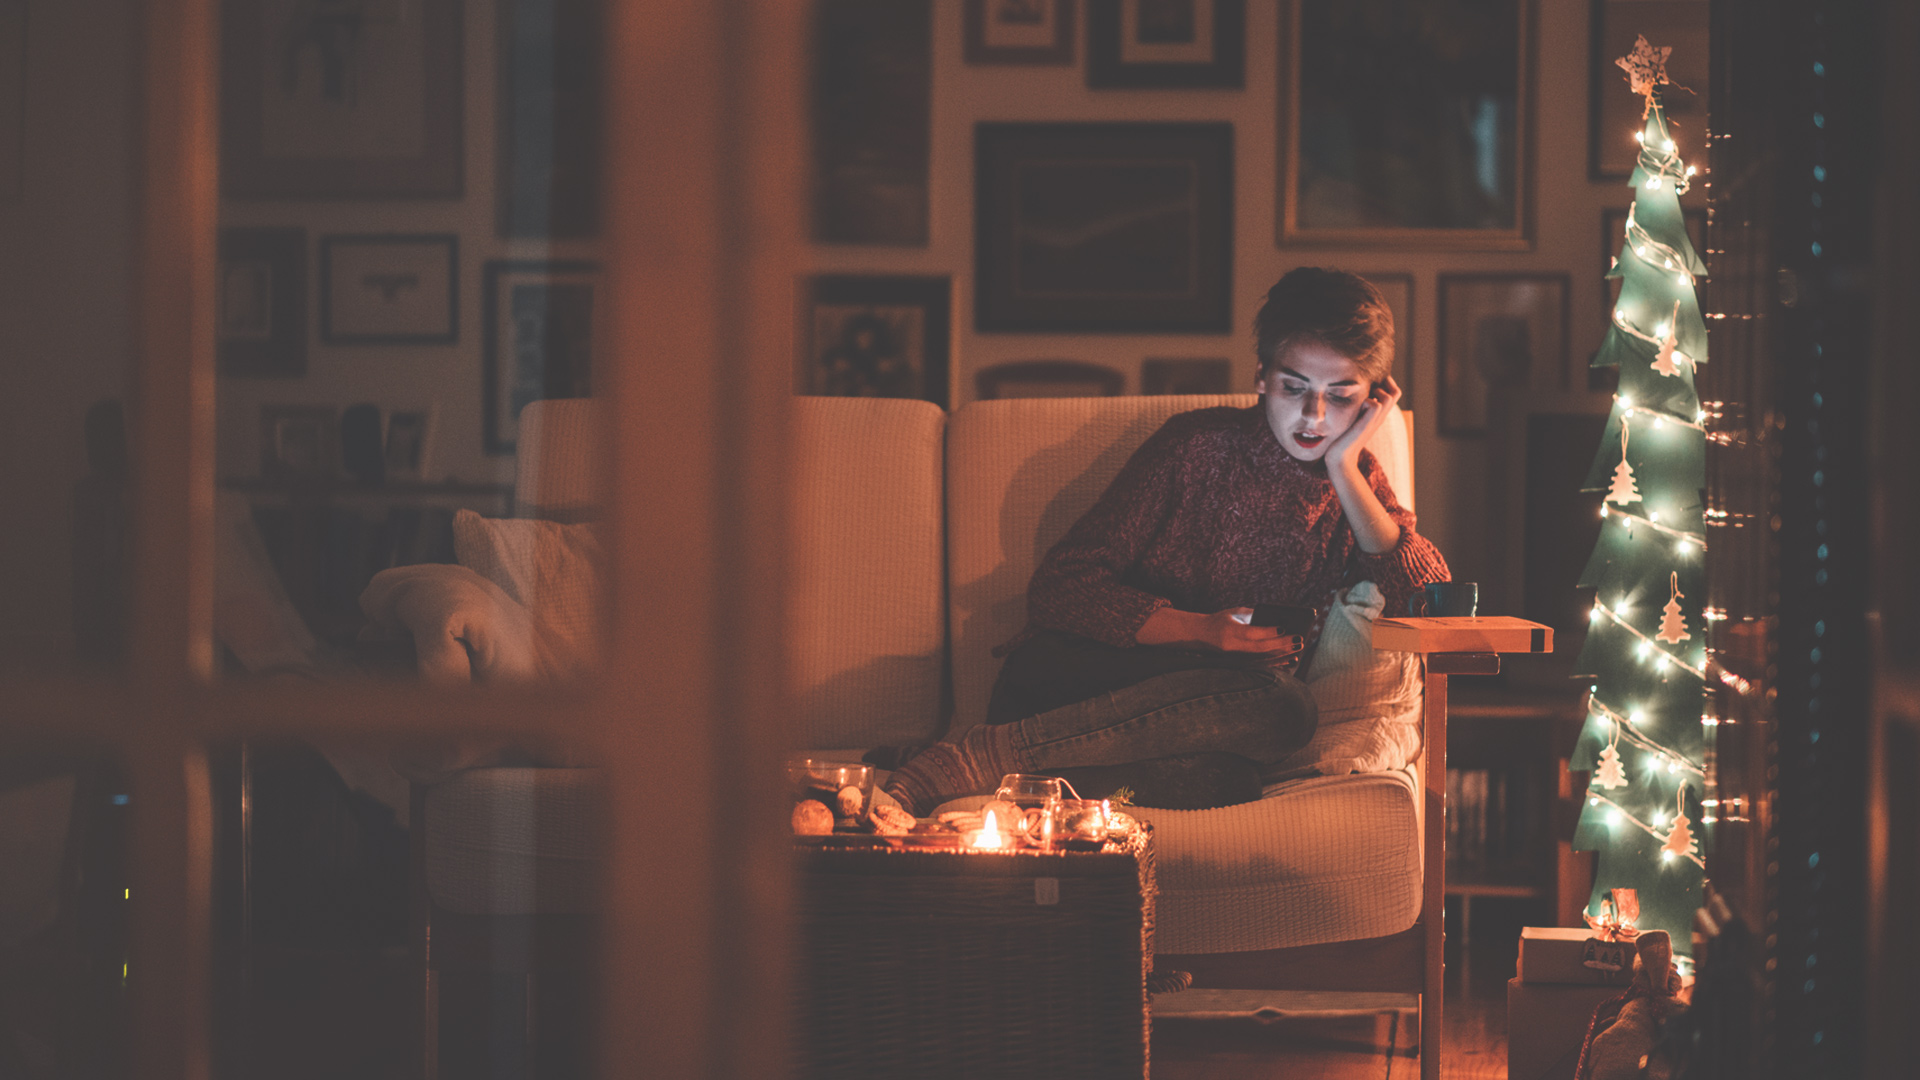 Woman spending time alone during the holidays